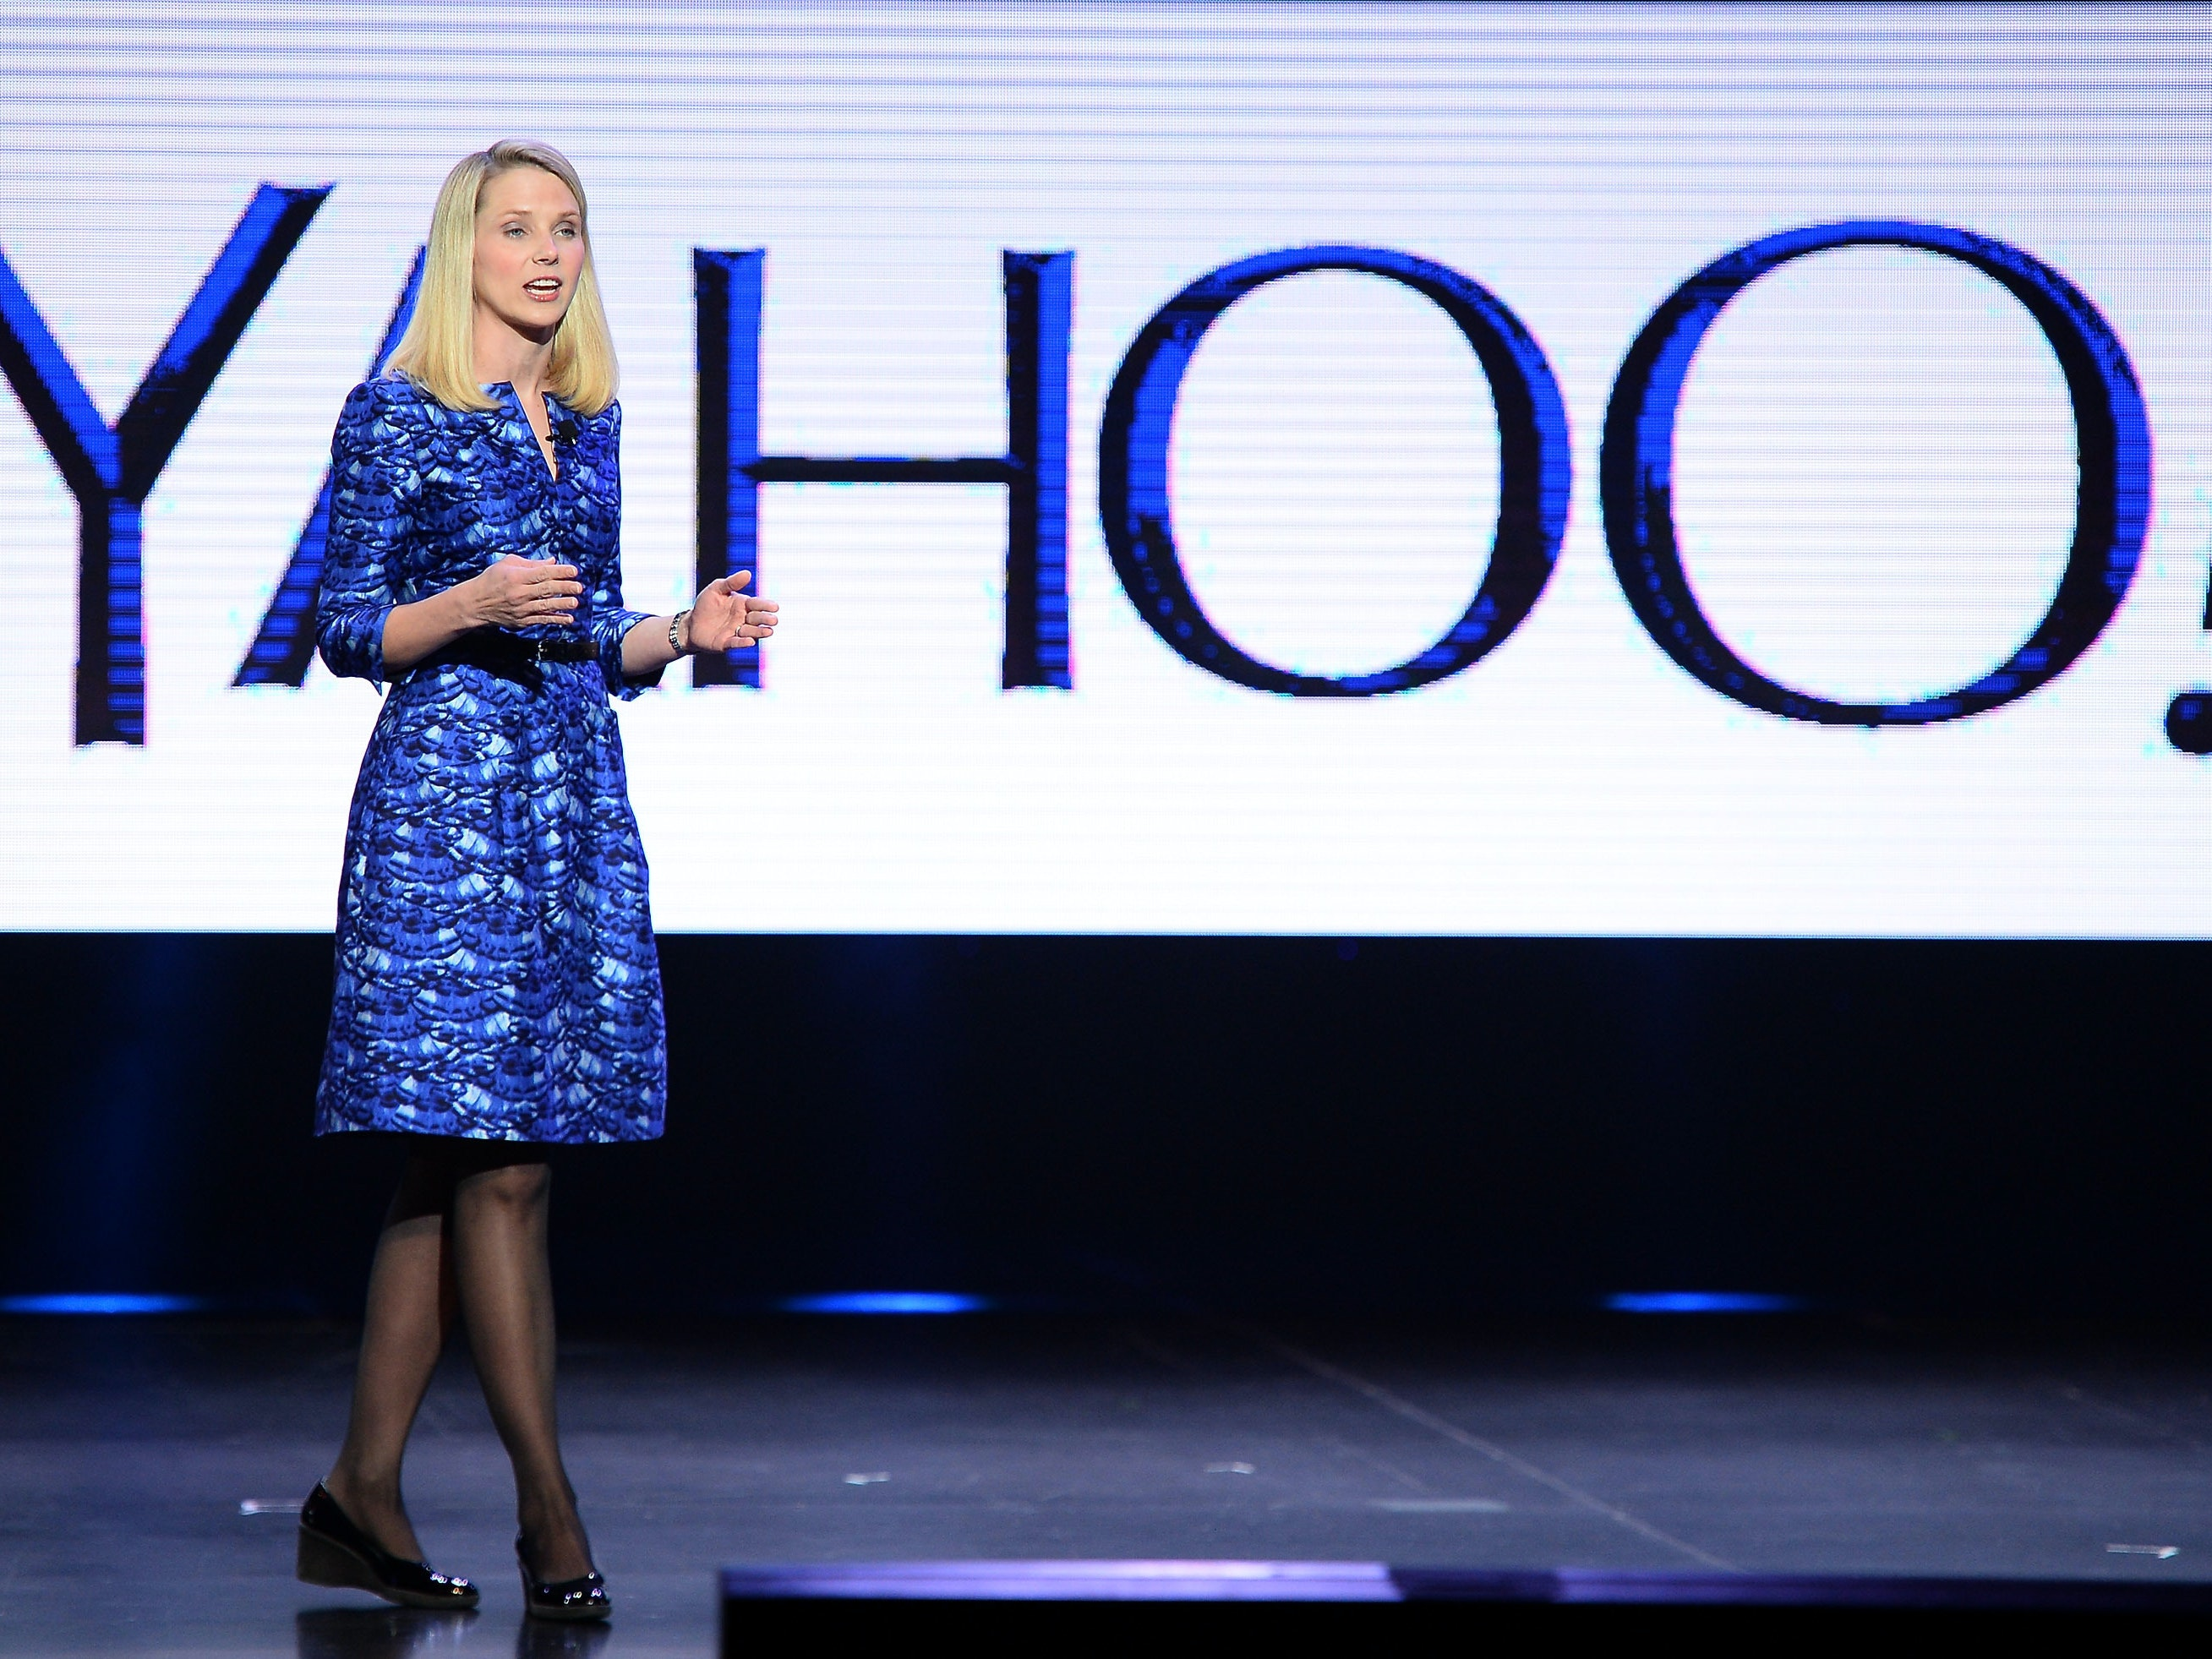 Yahoo Urges You to Check Your Email After 500 Million Hacked